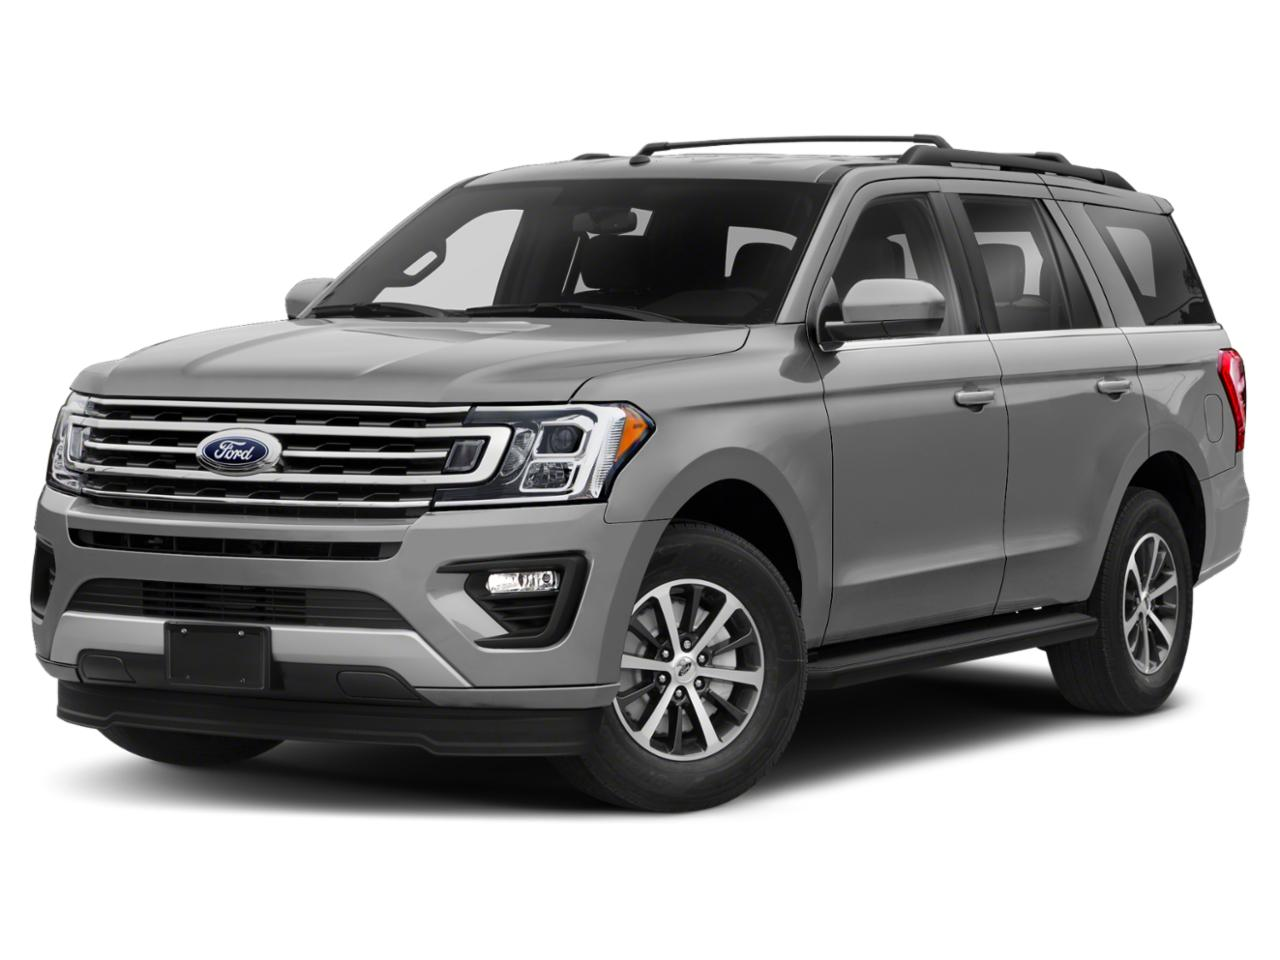 2018 Ford Expedition Vehicle Photo in Tulsa, OK 74133